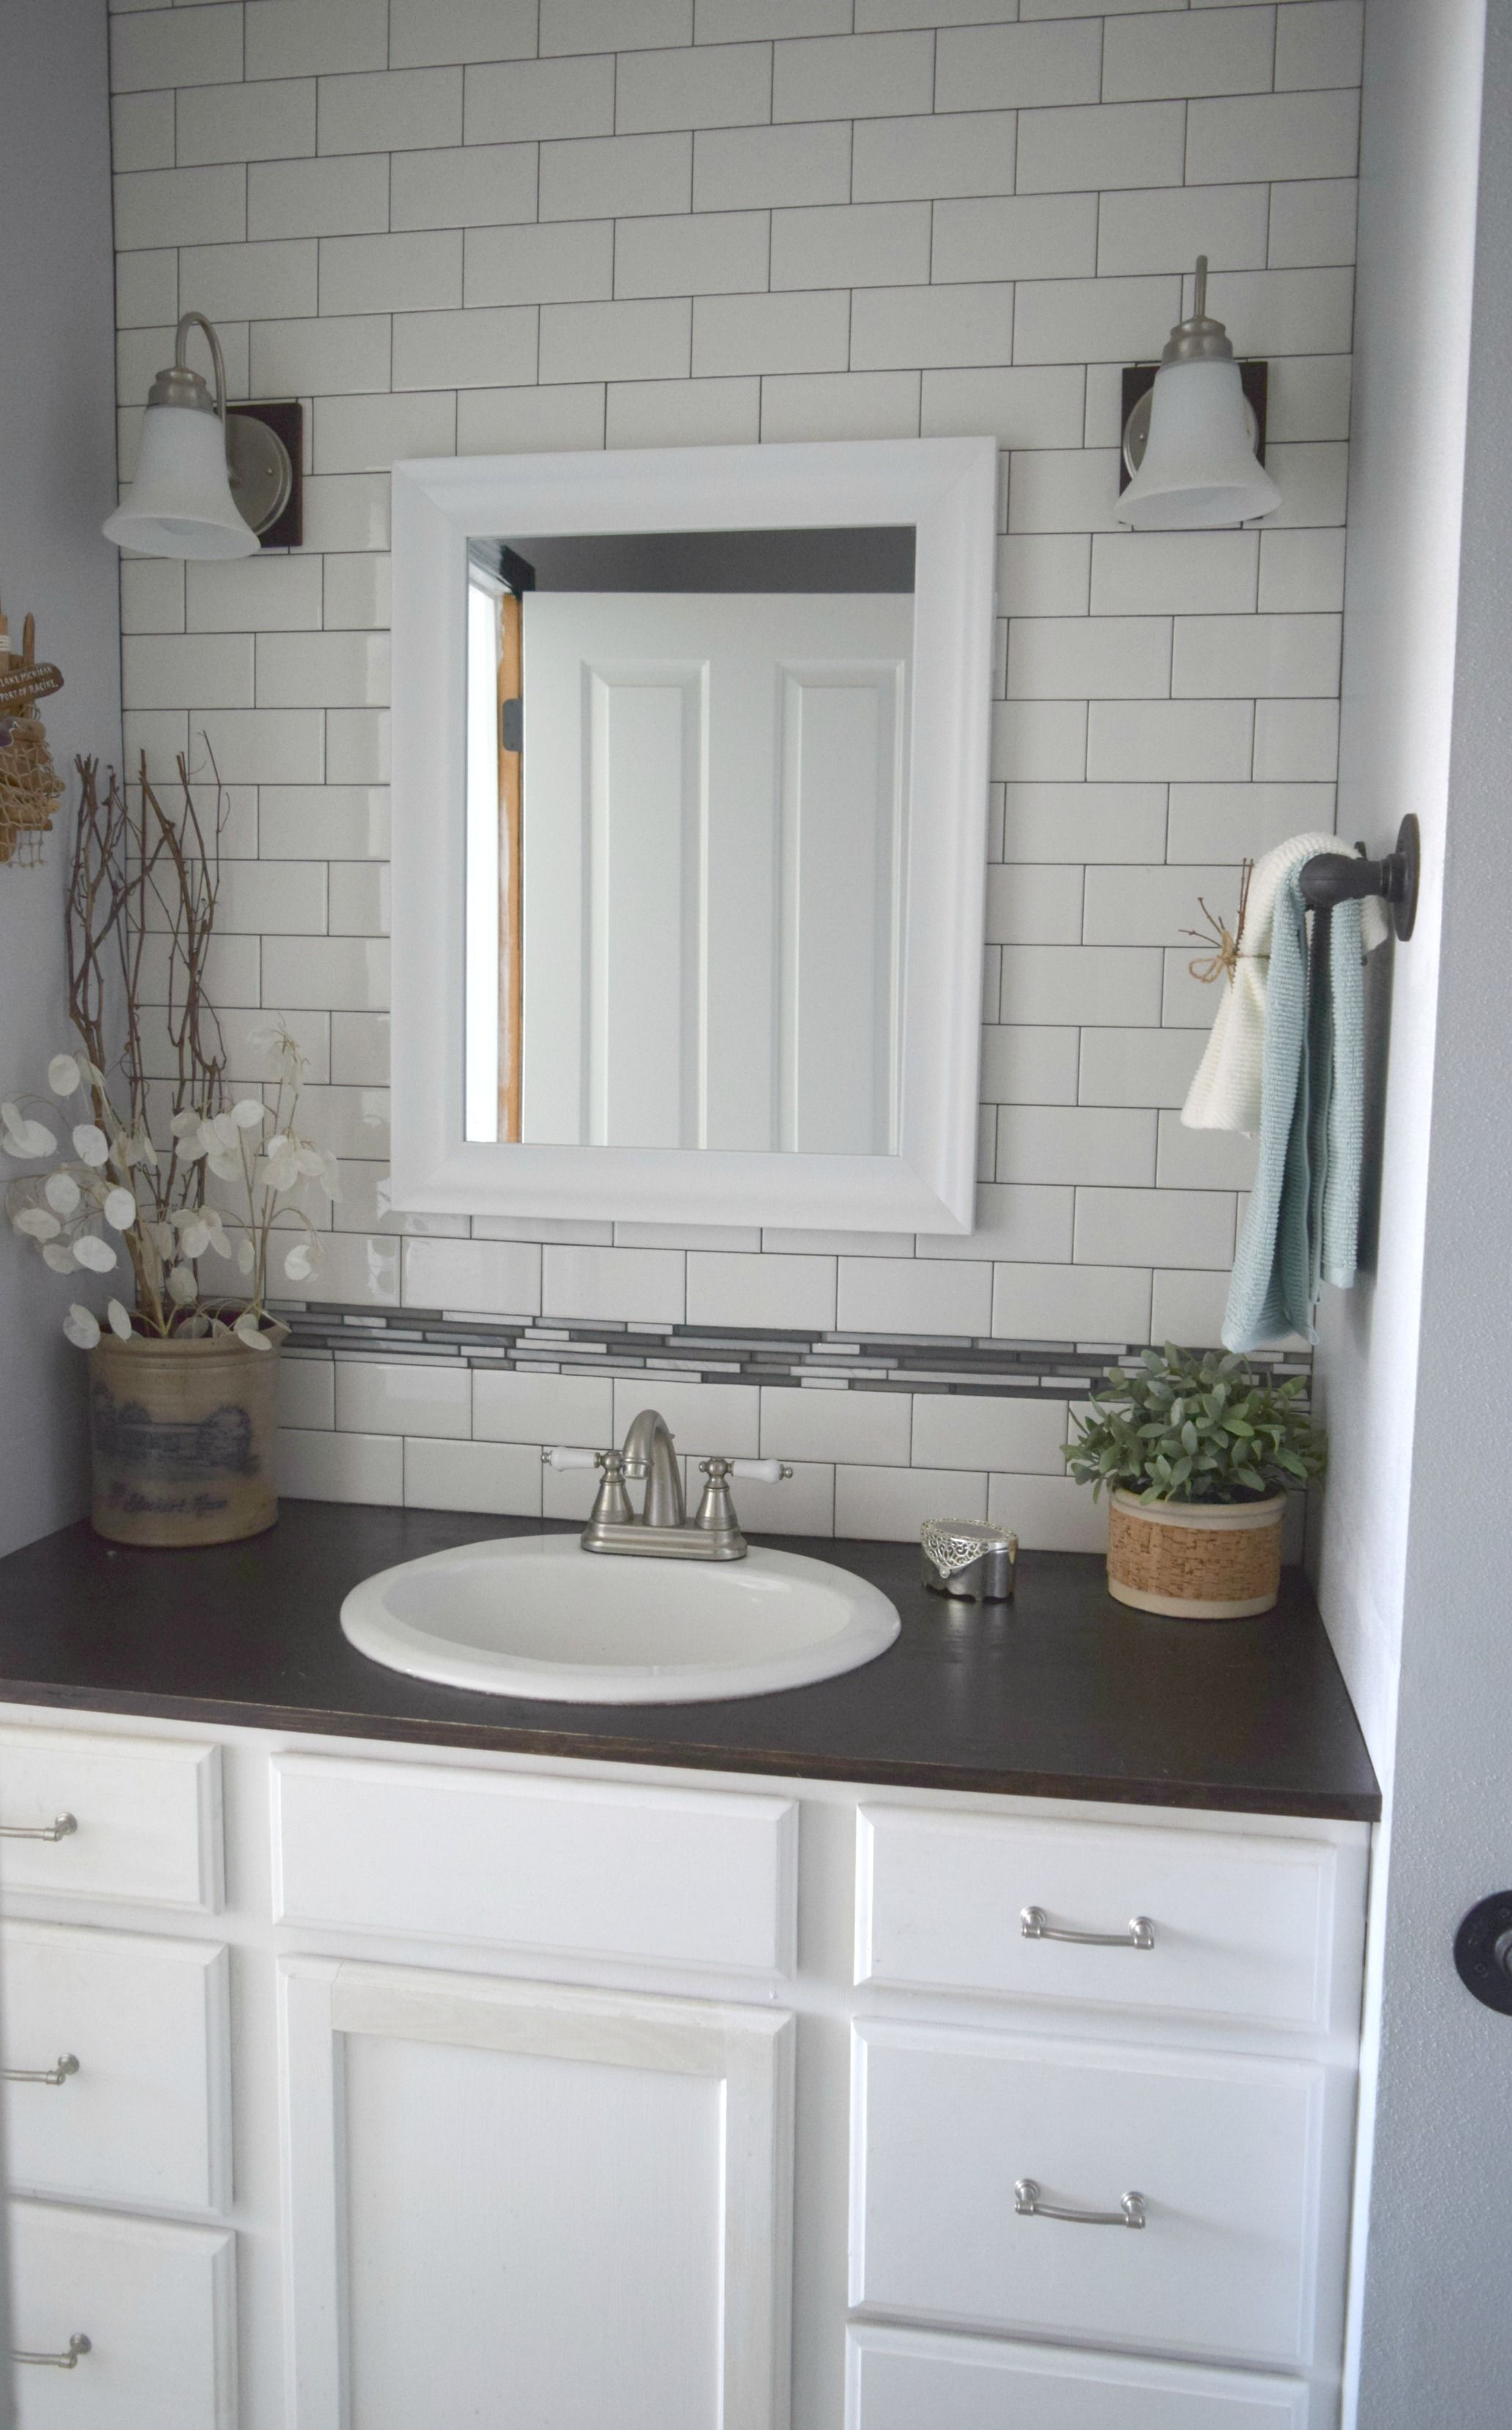 Bathroom and Kitchen Renovations You Can Afford | Small bathroom ...